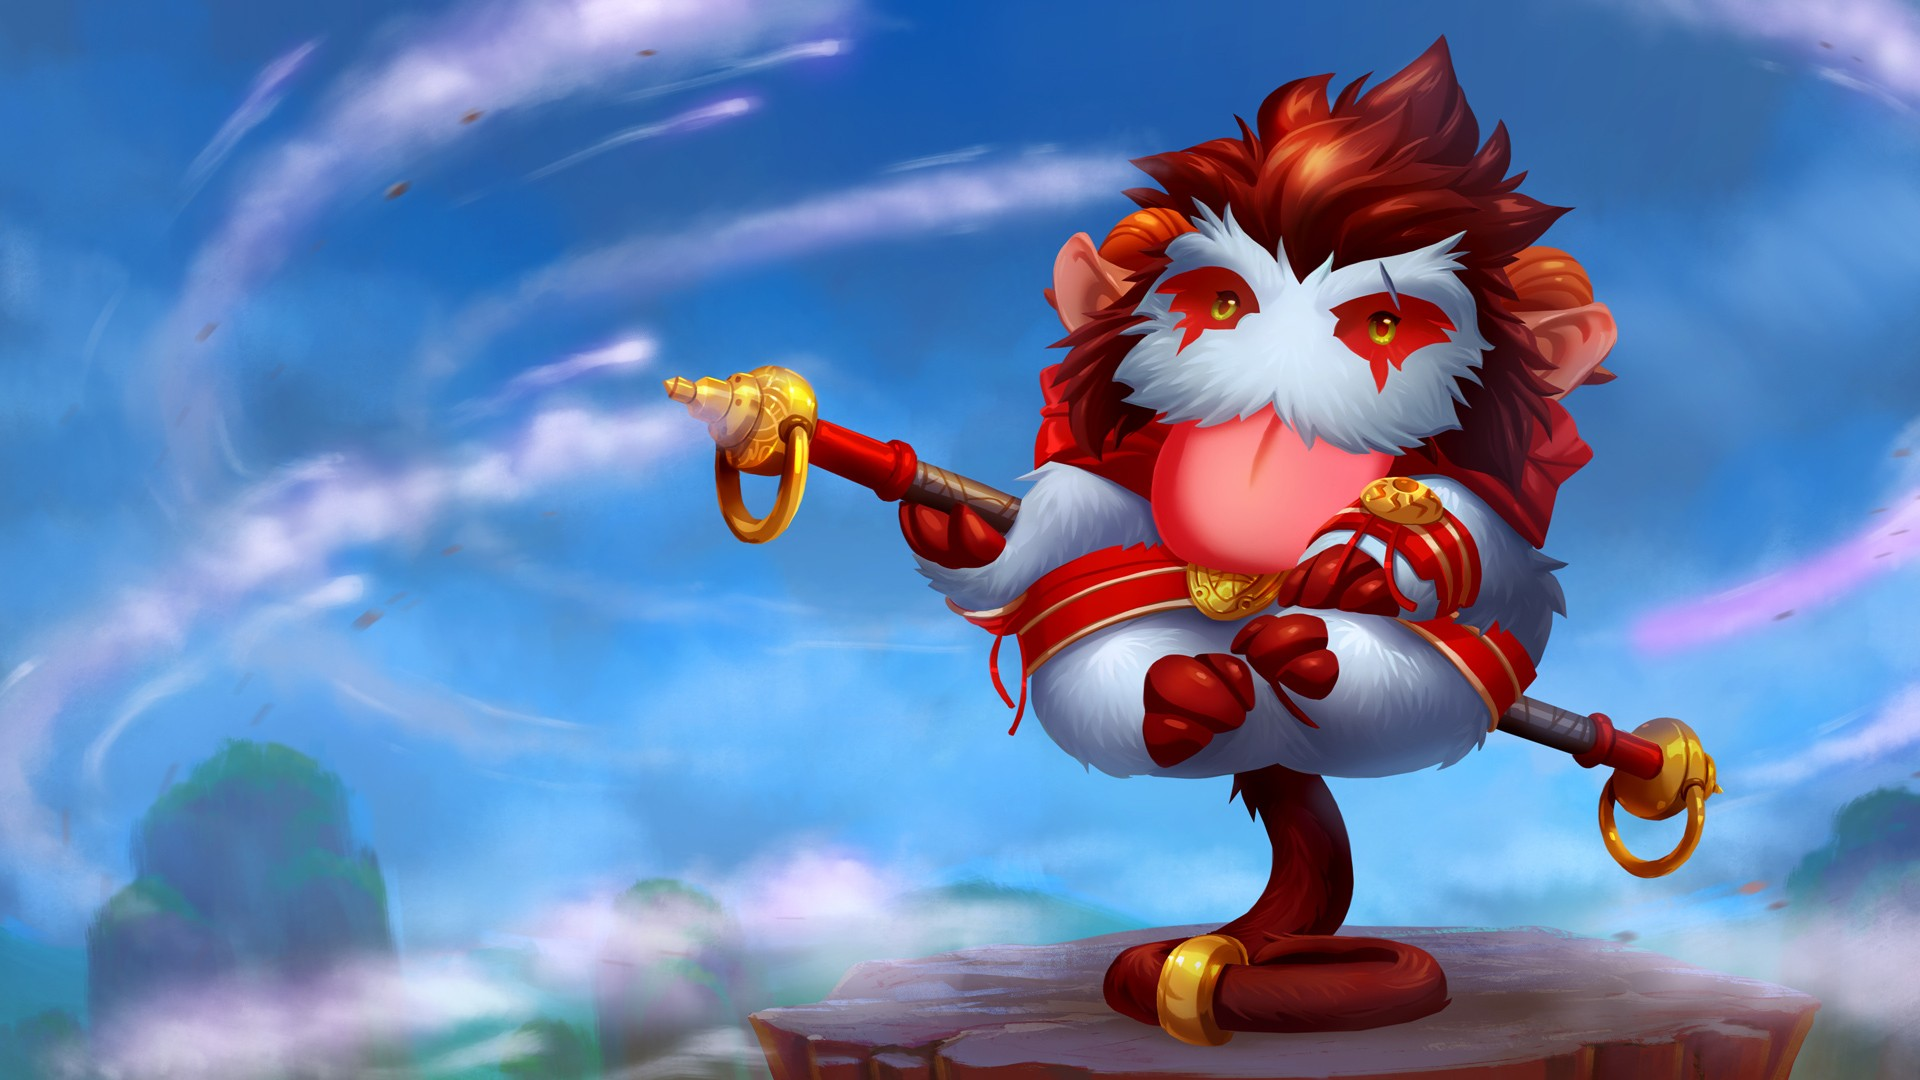 Lol Wallpapers Hd 1980x1080 League Of Legends Poro Wallpapers Hd Desktop And Mobile